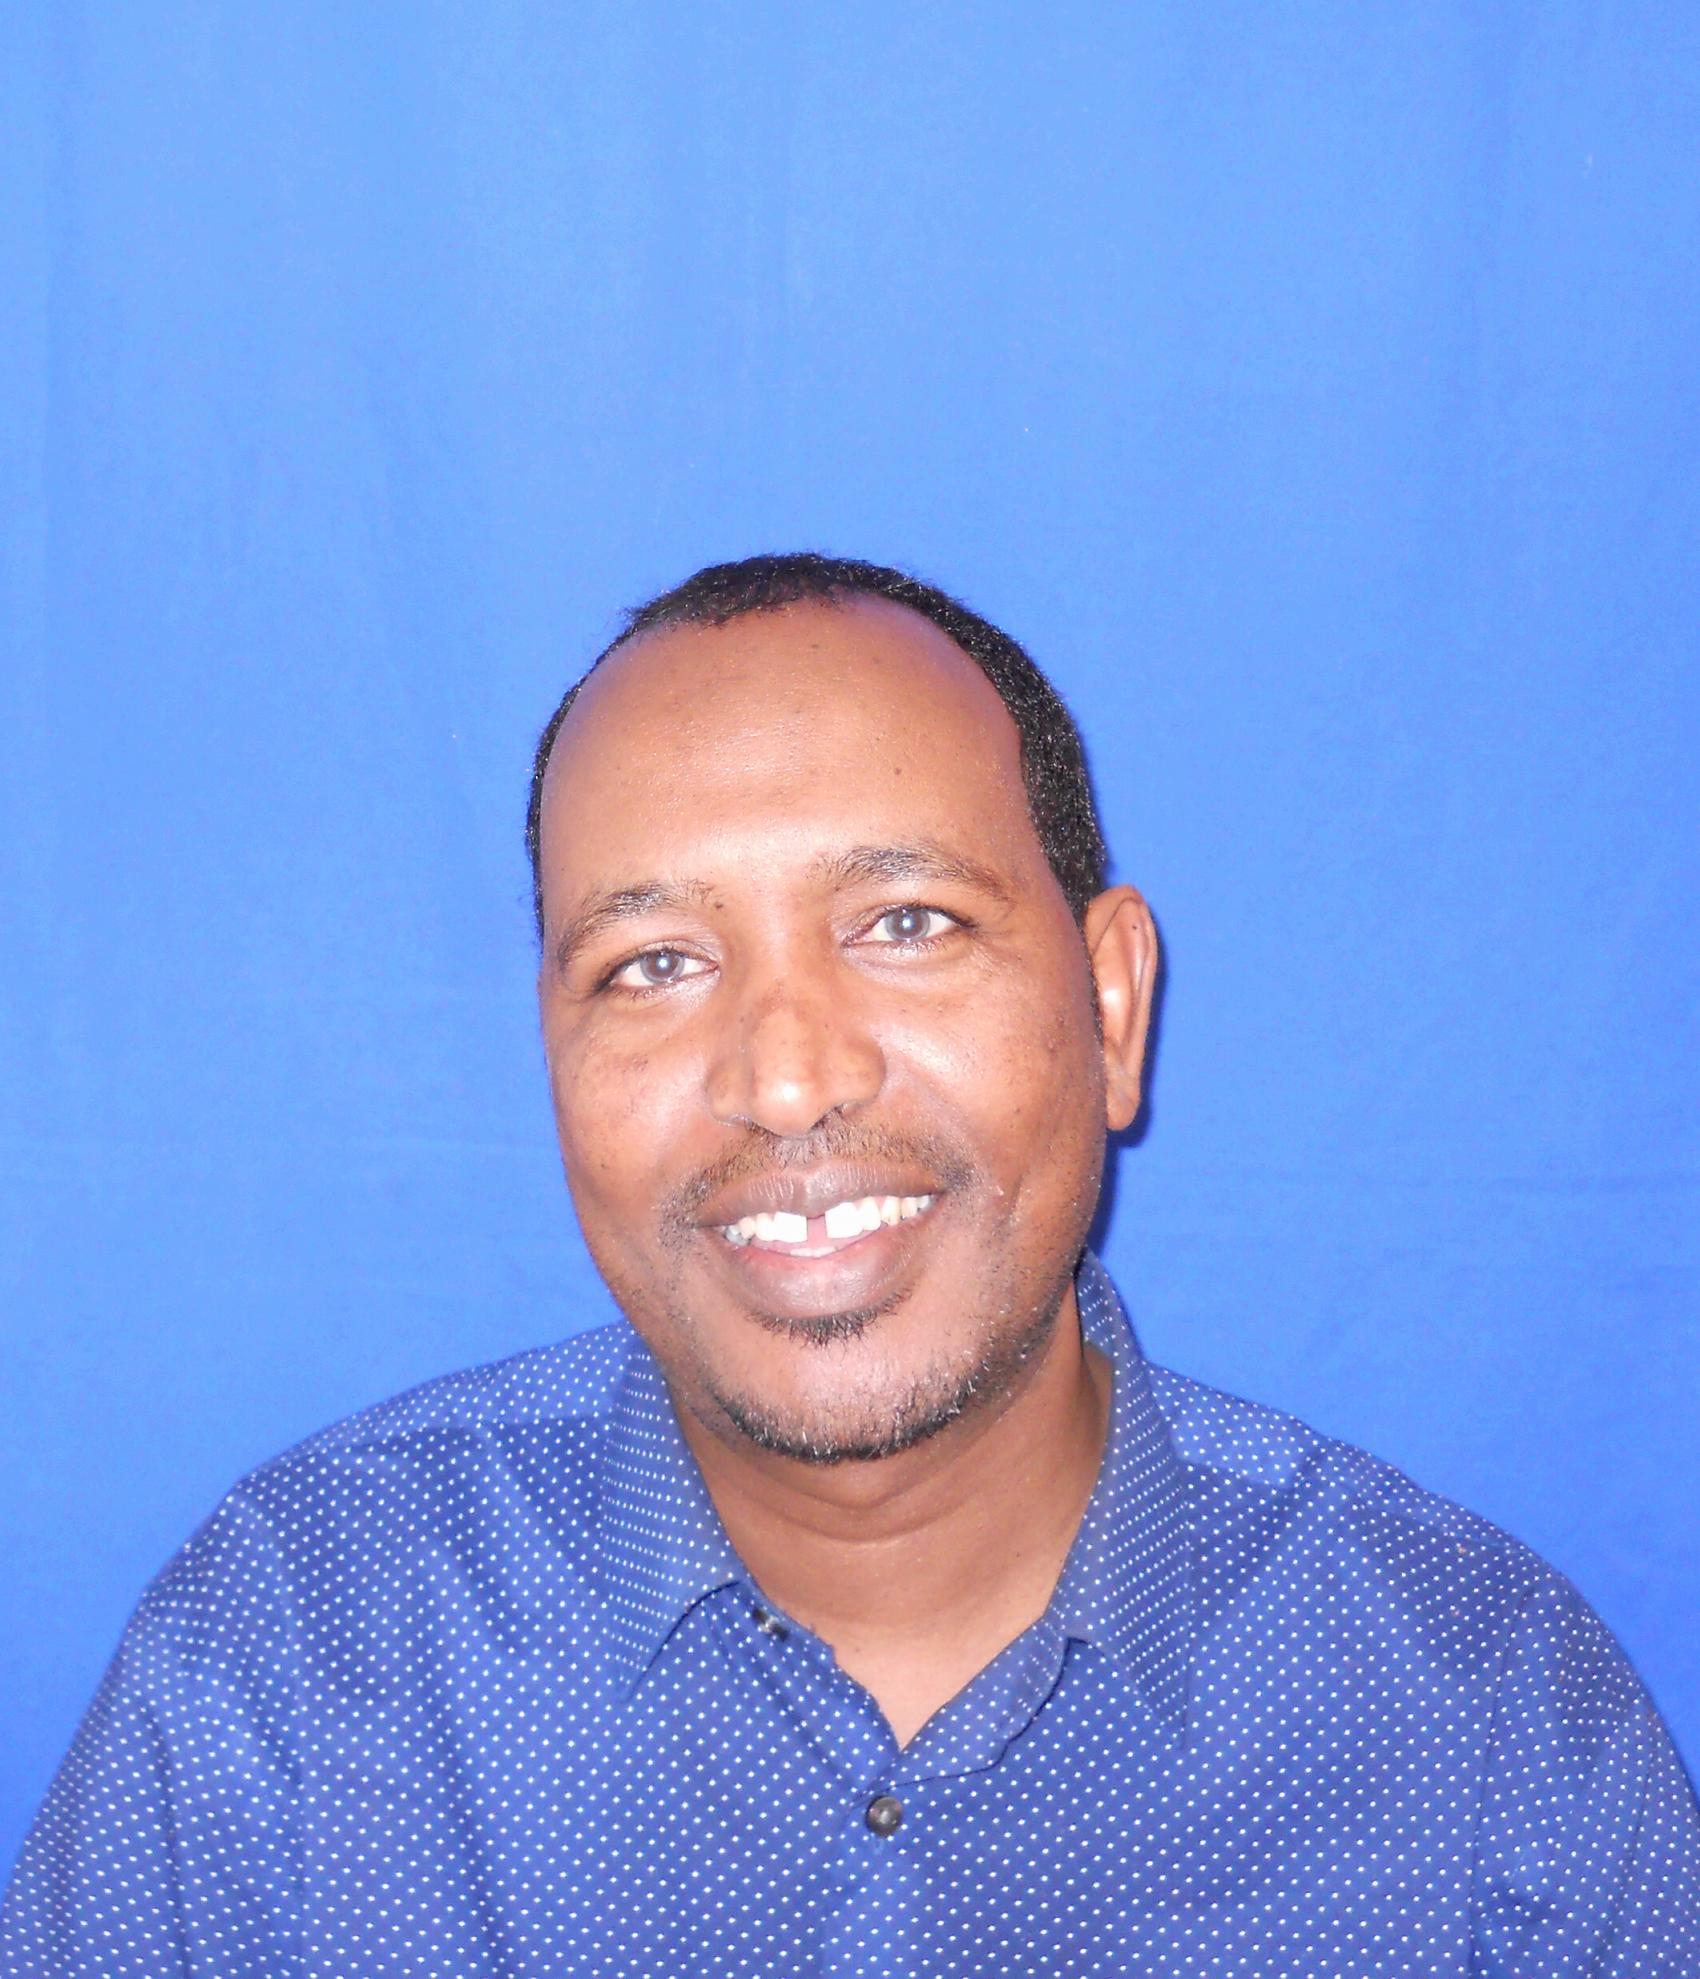 photo of OSMAN AHMED